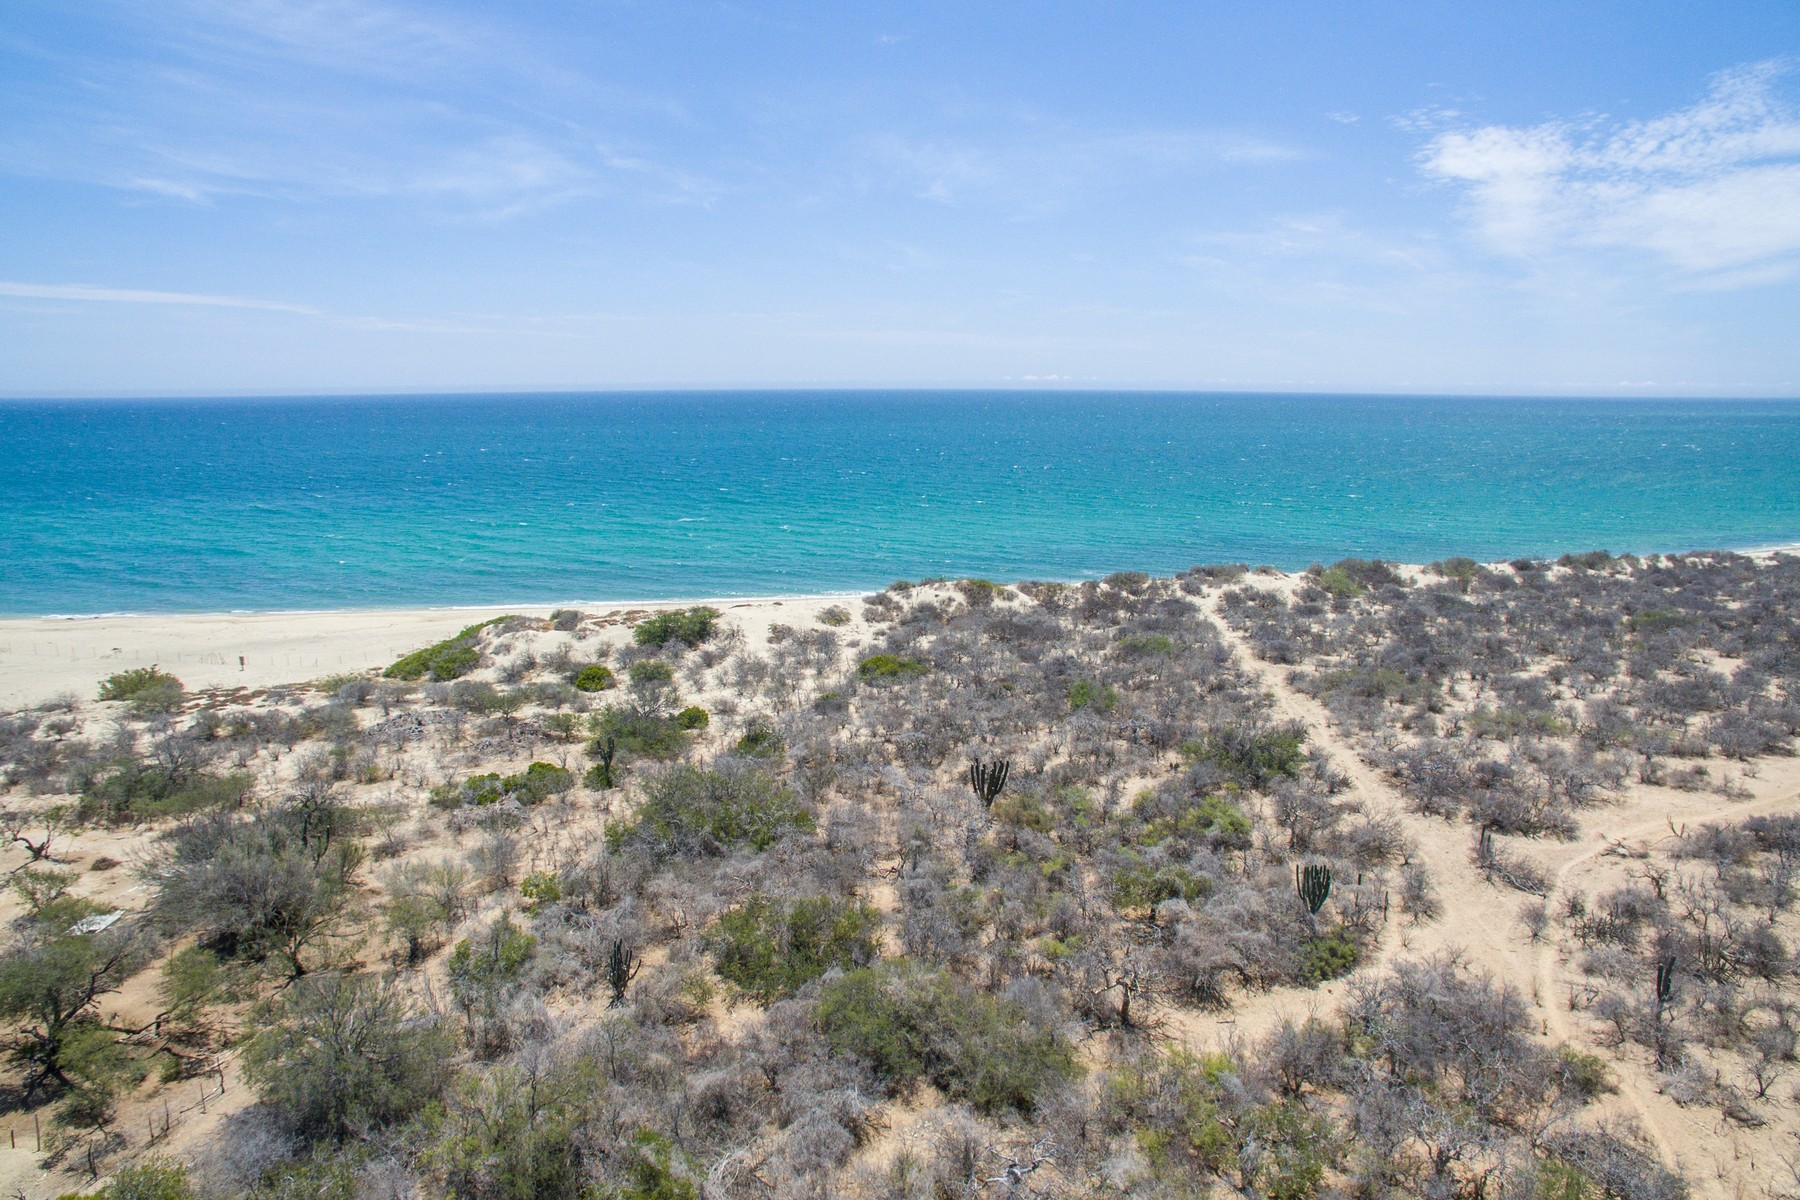 Land for Sale at GRE RINCON CABO PULMO La Ribera San Jose Del Cabo, 23570 Mexico